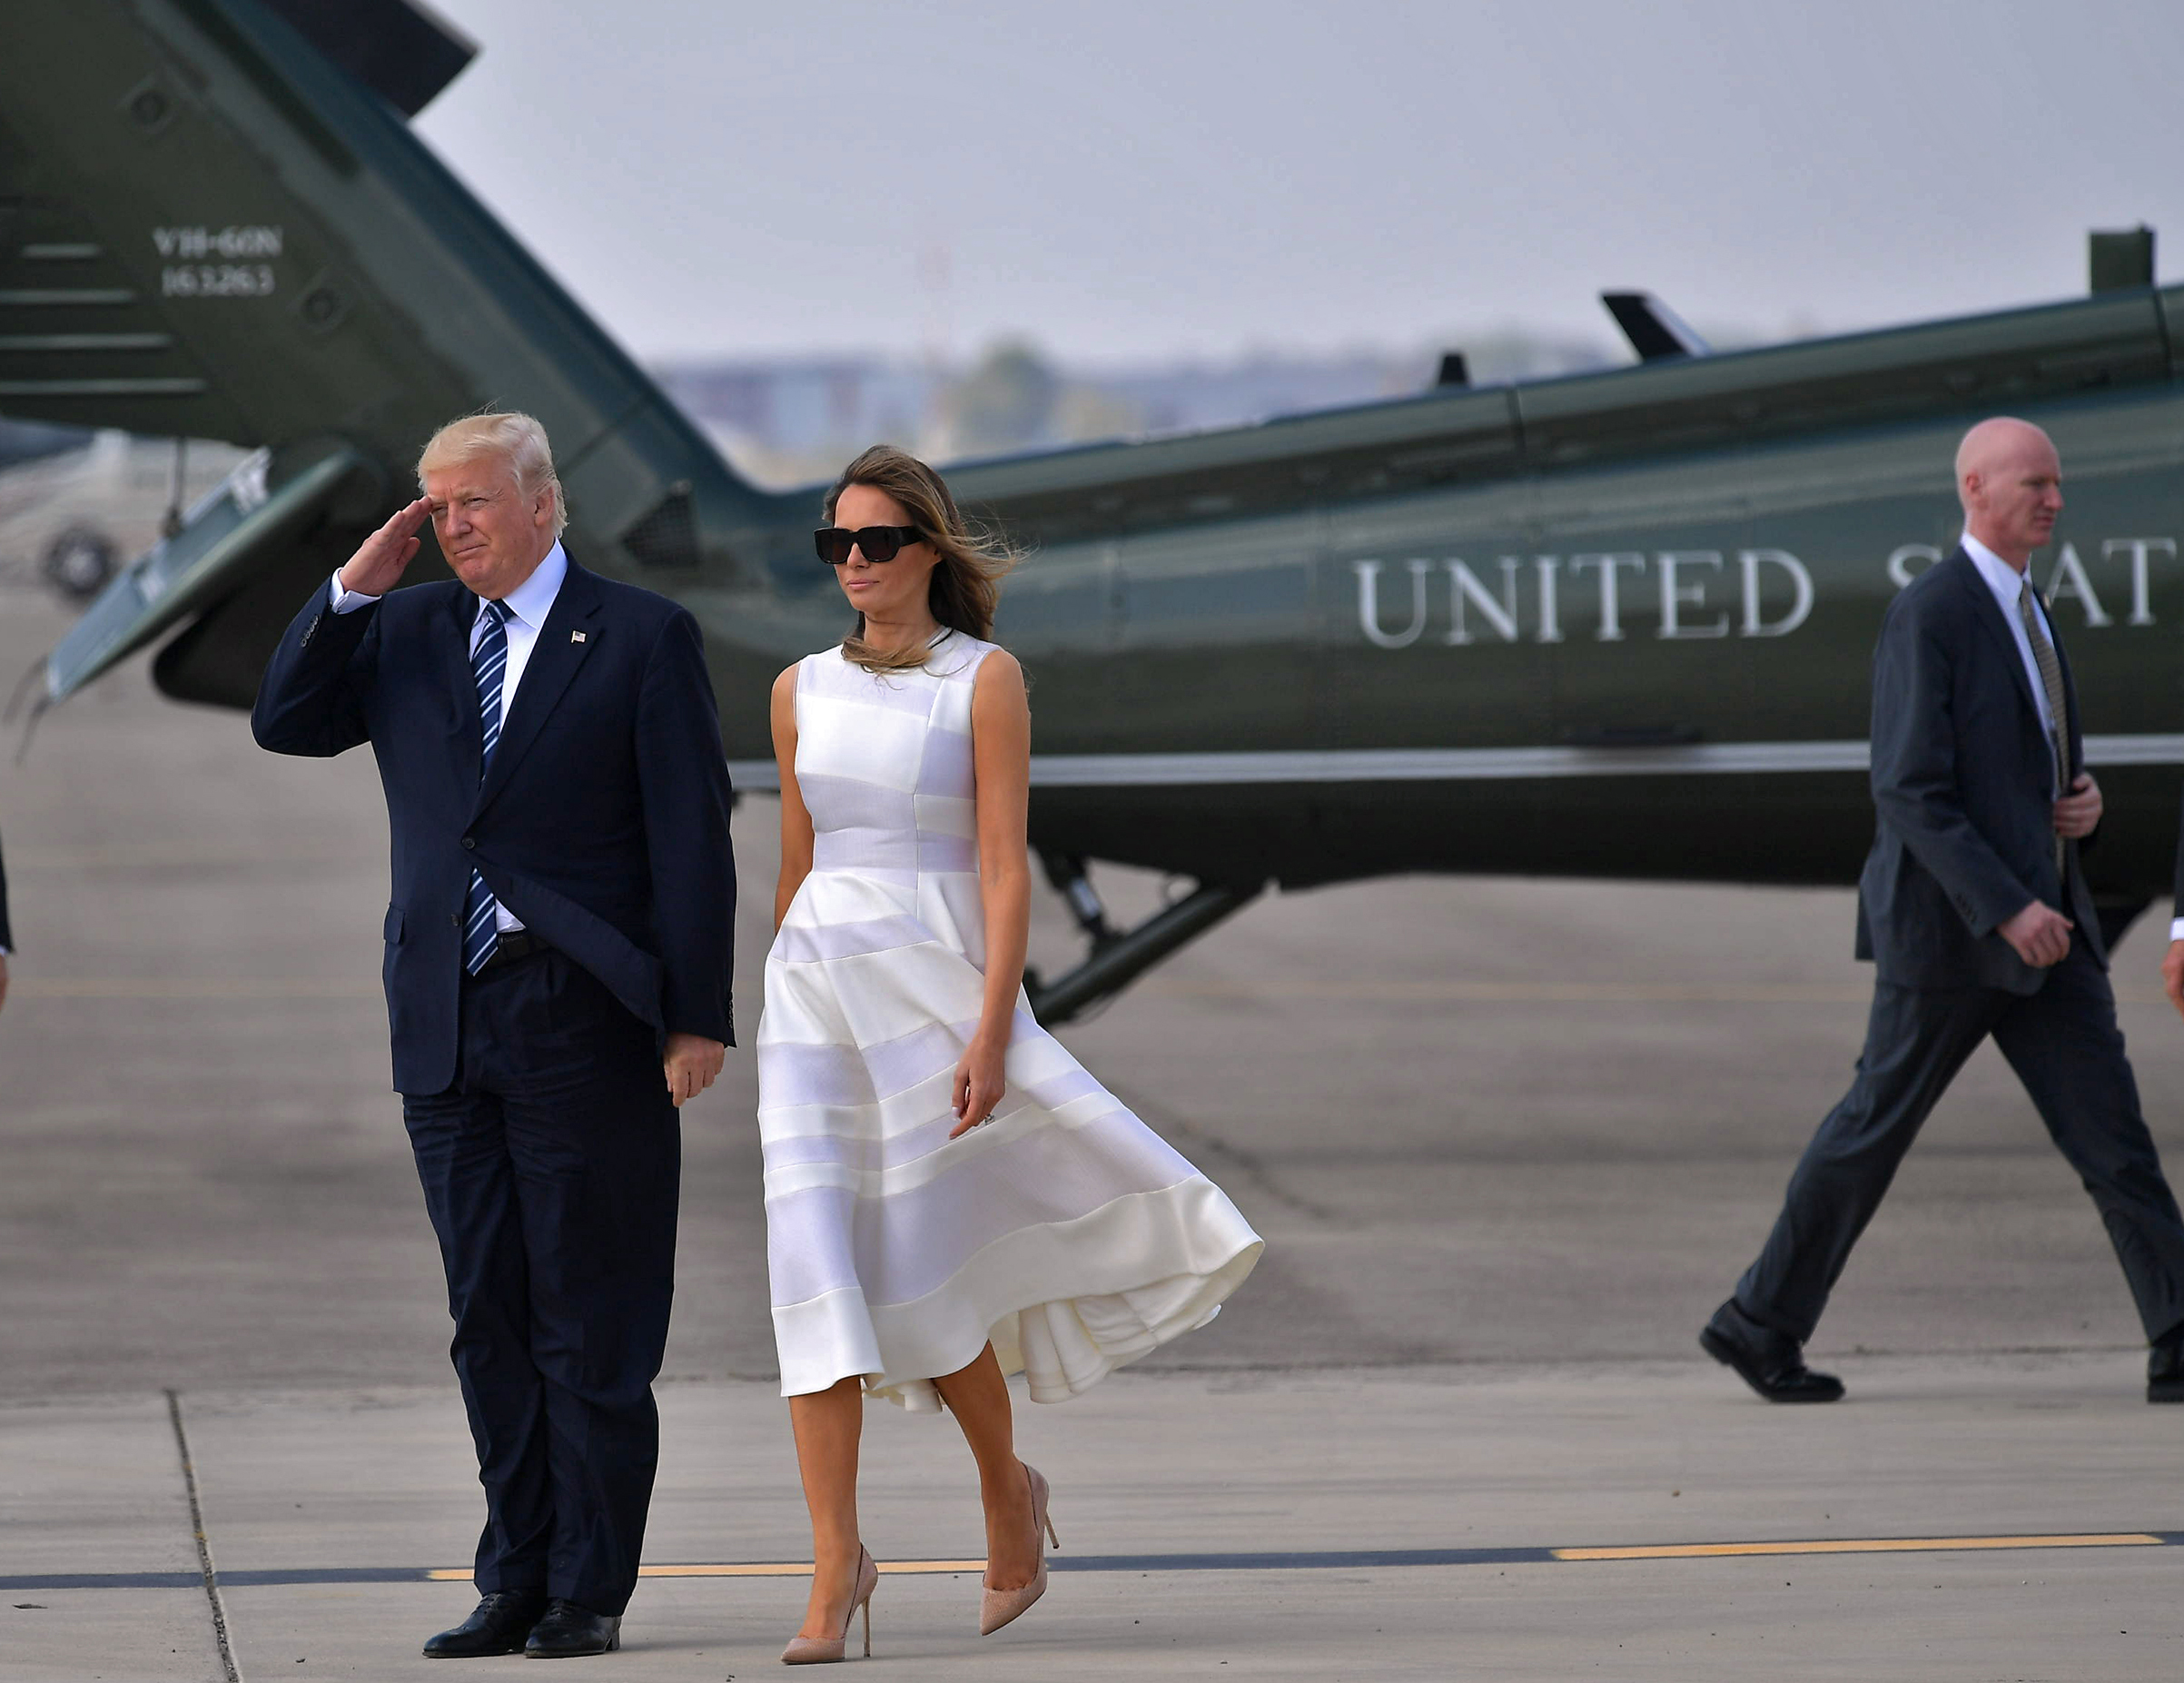 President Donald Trump and first lady Melania Trump wearing a Roksanda ivory dress, make their way to board Air Force One before departing from Ben Gurion International Airport in Tel Aviv on May 23, 2017.